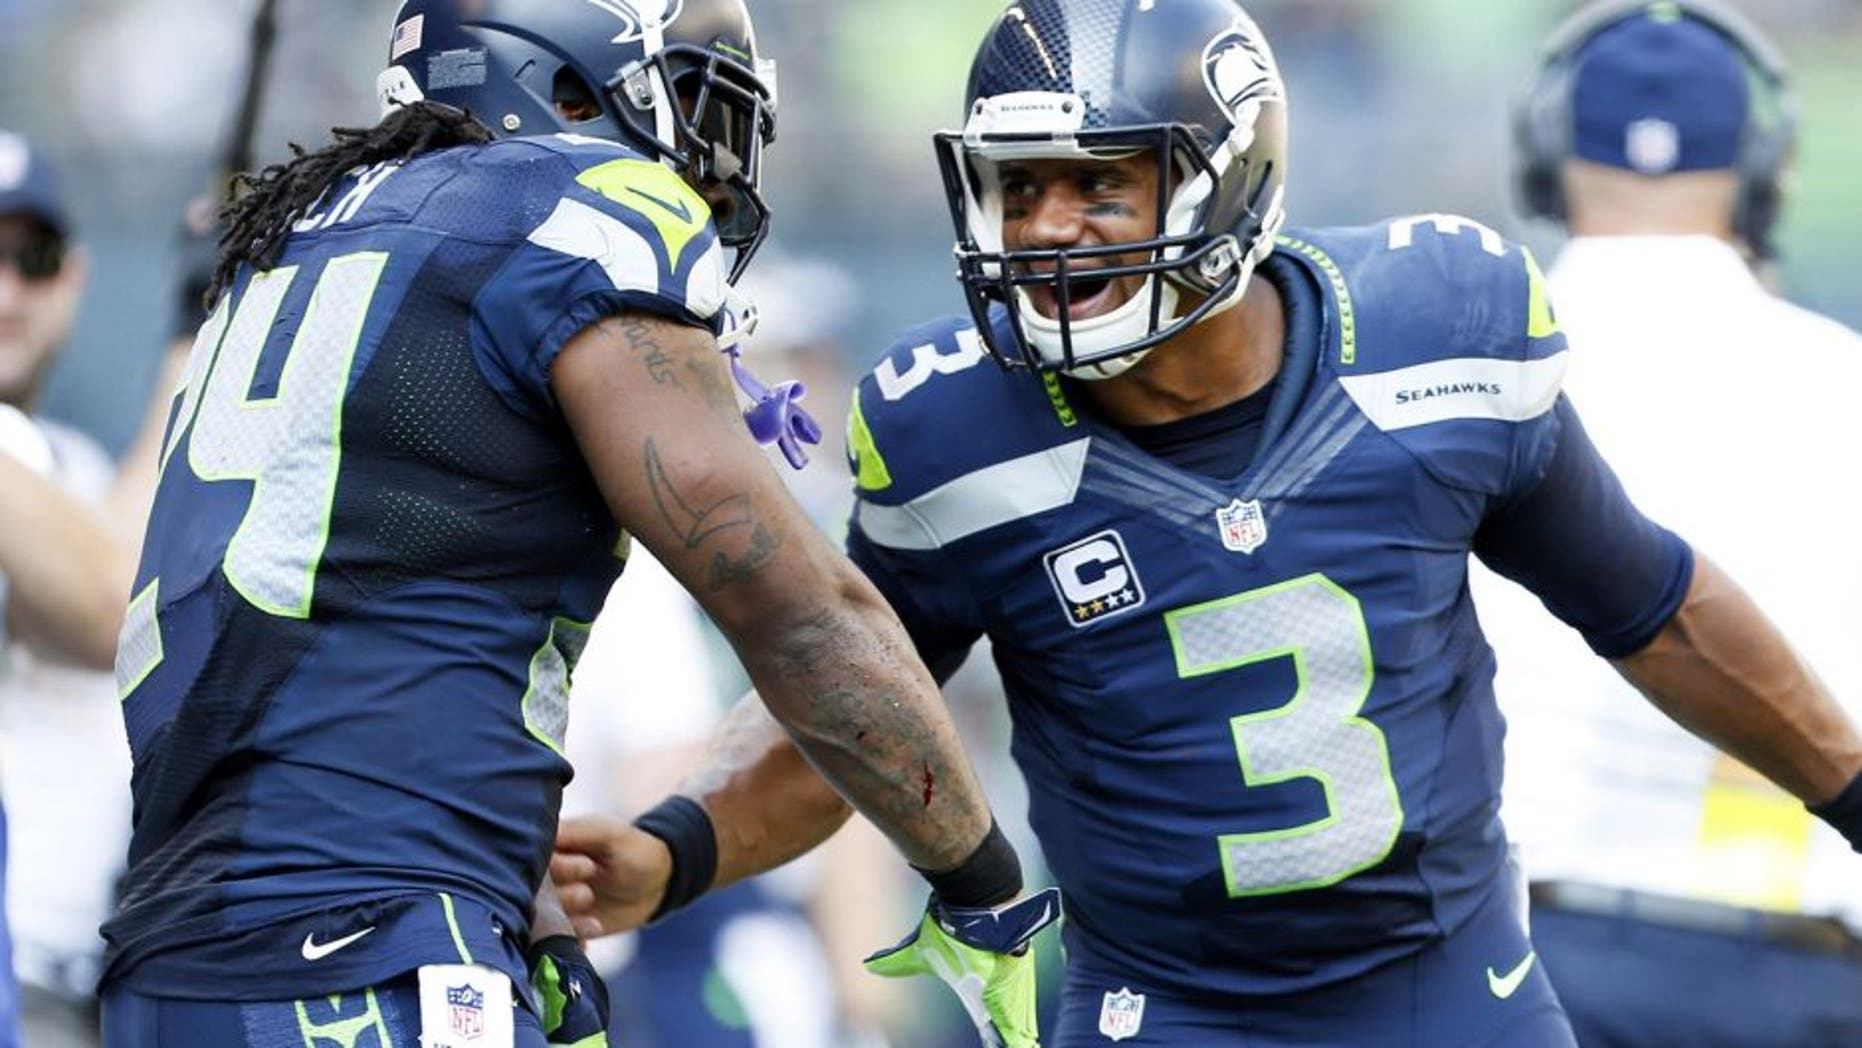 Sep 21, 2014; Seattle, WA, USA; Seattle Seahawks quarterback Russell Wilson (3) celebrates with Seattle Seahawks running back Marshawn Lynch (24) after a touchdown pass during the second quarter against the Denver Broncos at CenturyLink Field. Mandatory Credit: Joe Nicholson-USA TODAY Sports